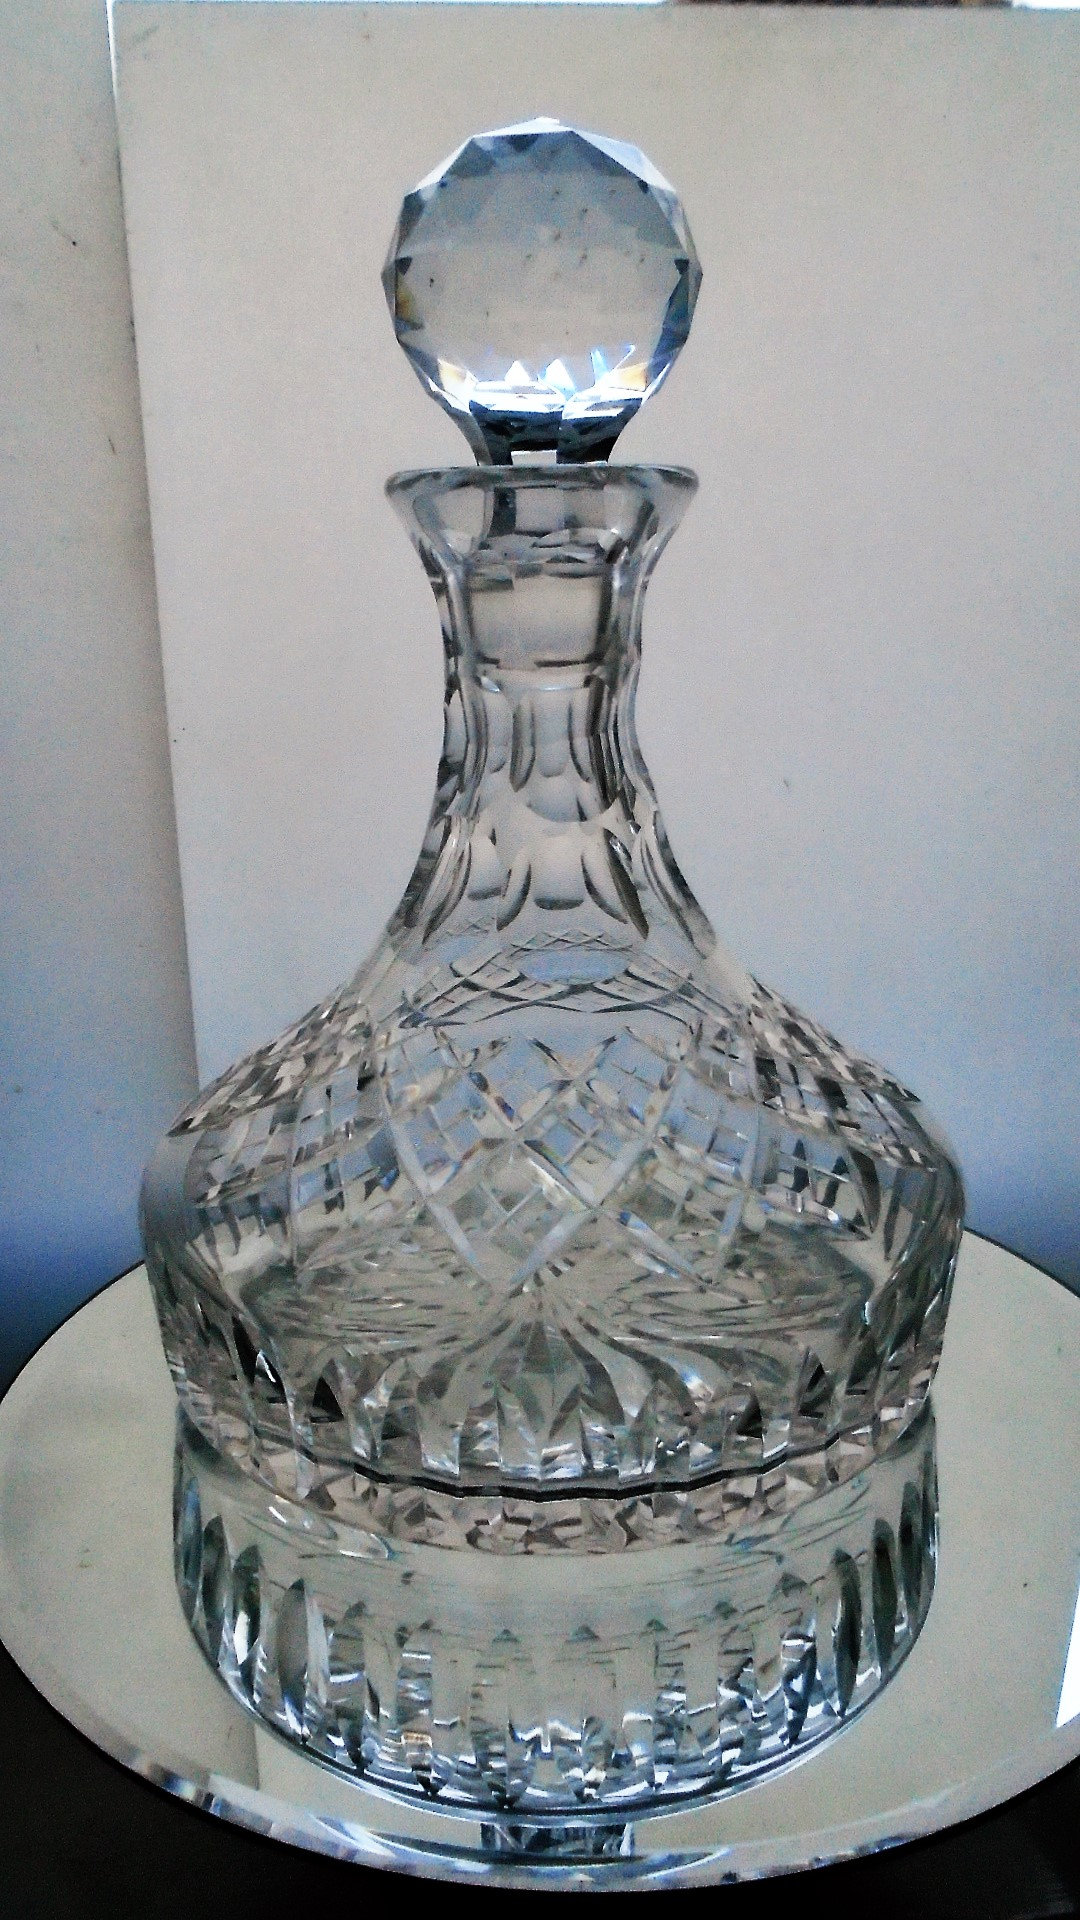 Superb 60s vintage clear cut glass crystal ships decanter.